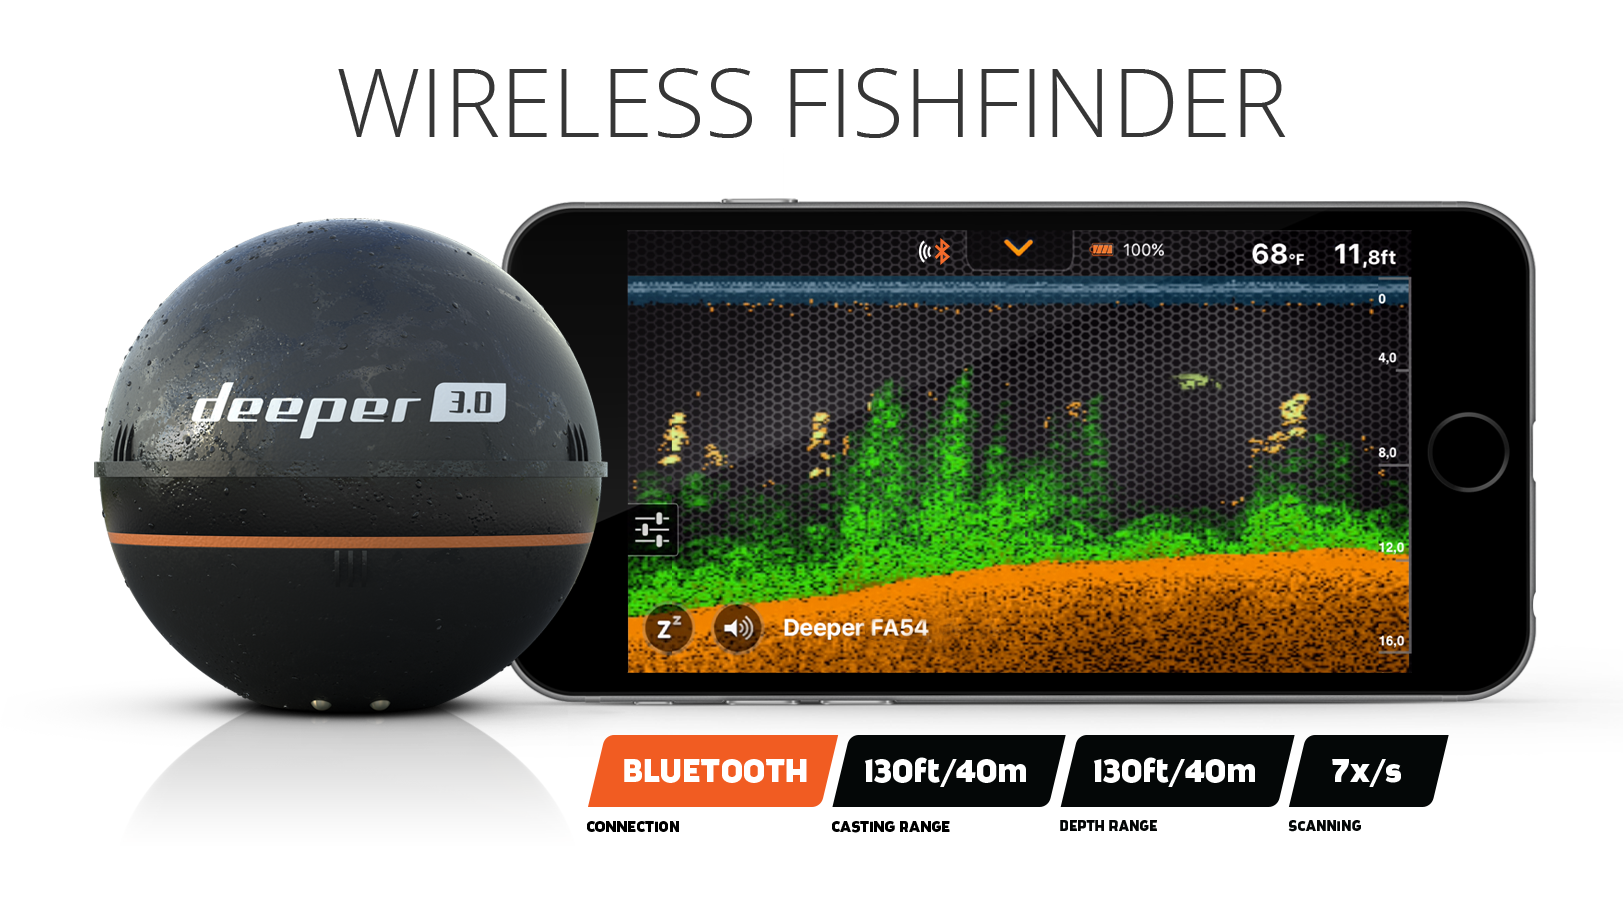 Deeper Fishfinder Smart Sonar Pro Wifi Technology For